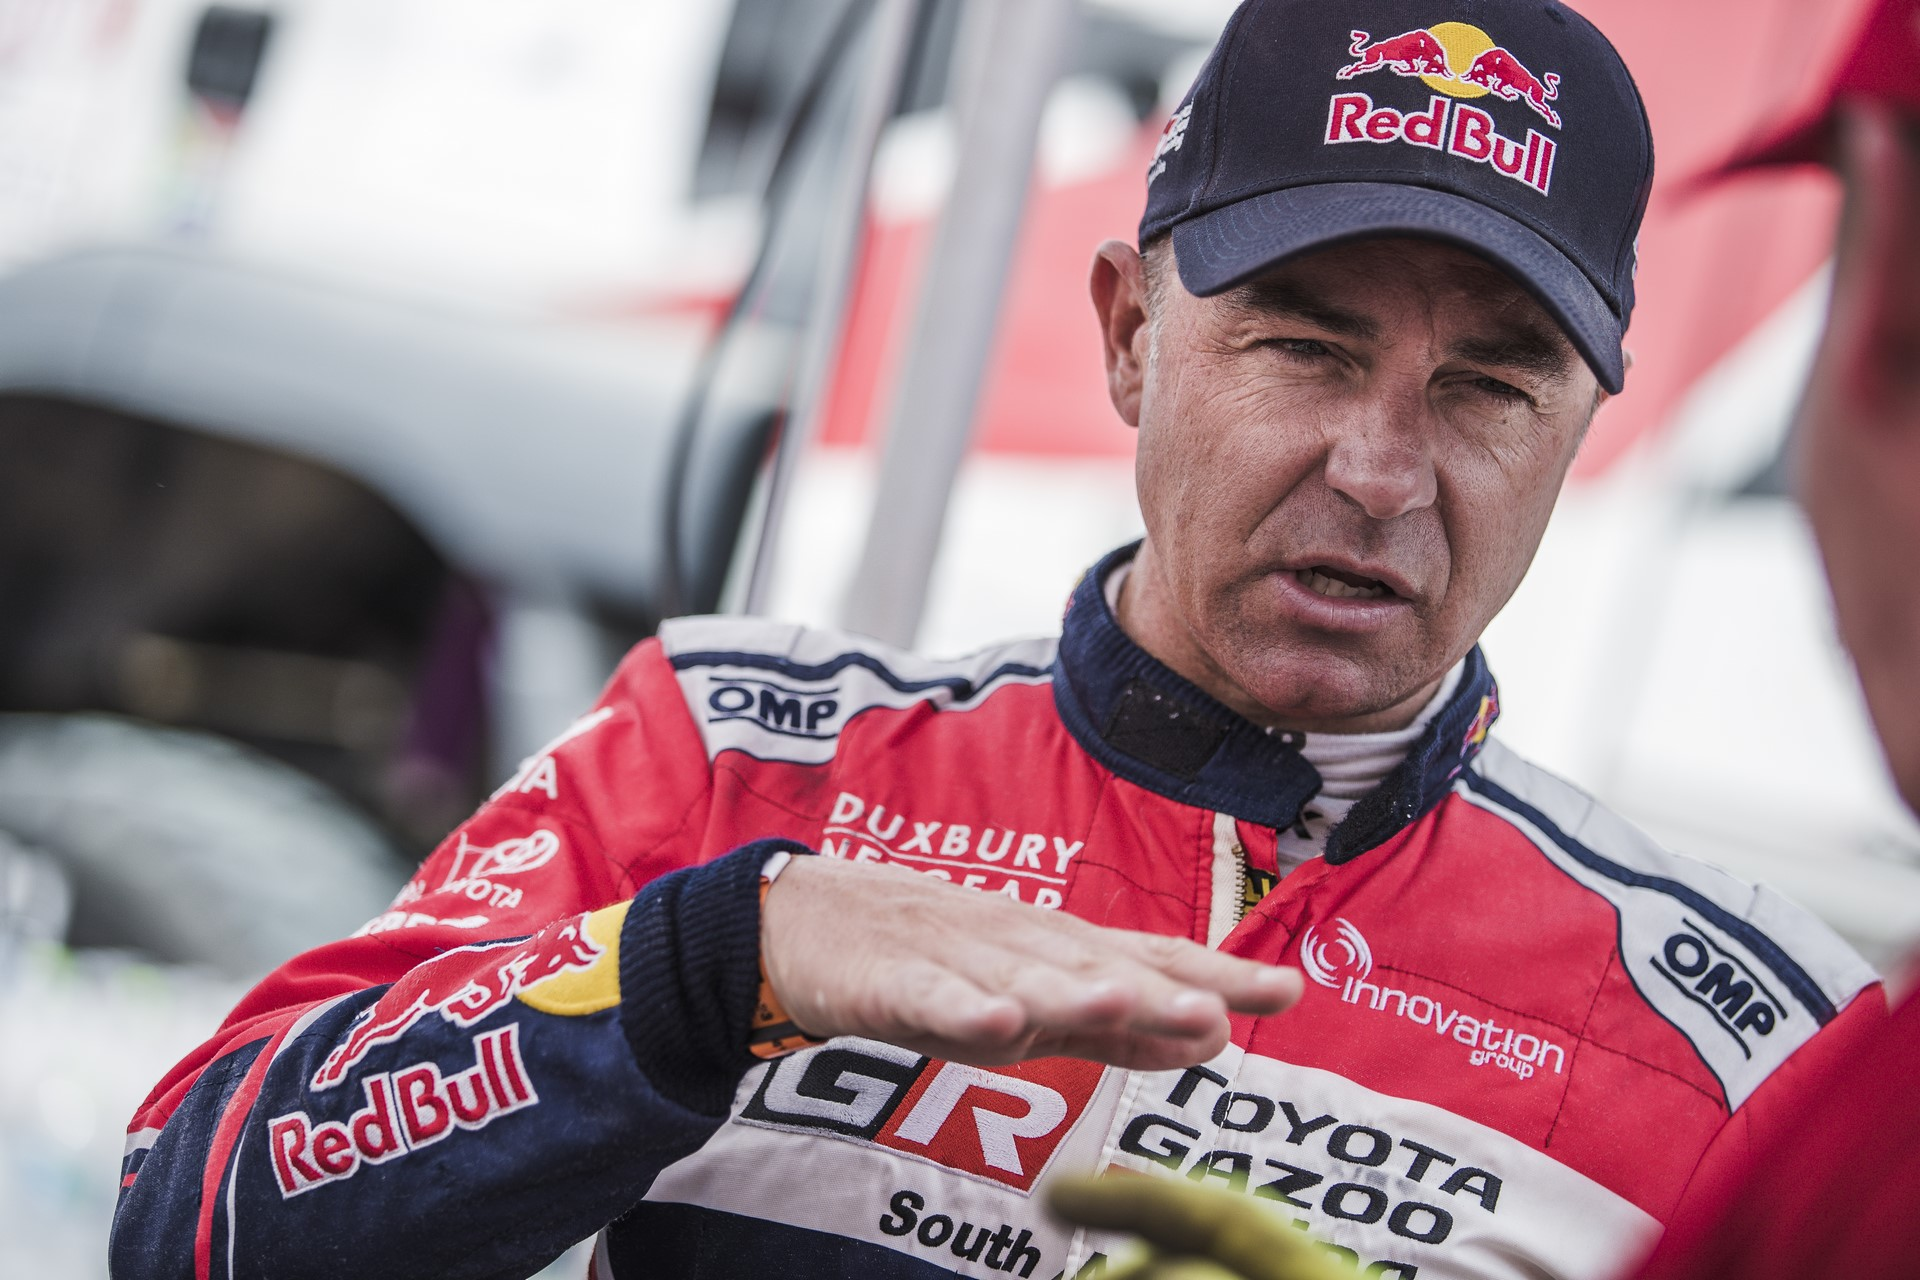 Giniel de Villiers (ZAF) of Toyota Gazoo Racing SA seen  at the bivouac after stage 2 of Rally Dakar 2018 from Pisco to Pisco, Peru on January 7, 2018.